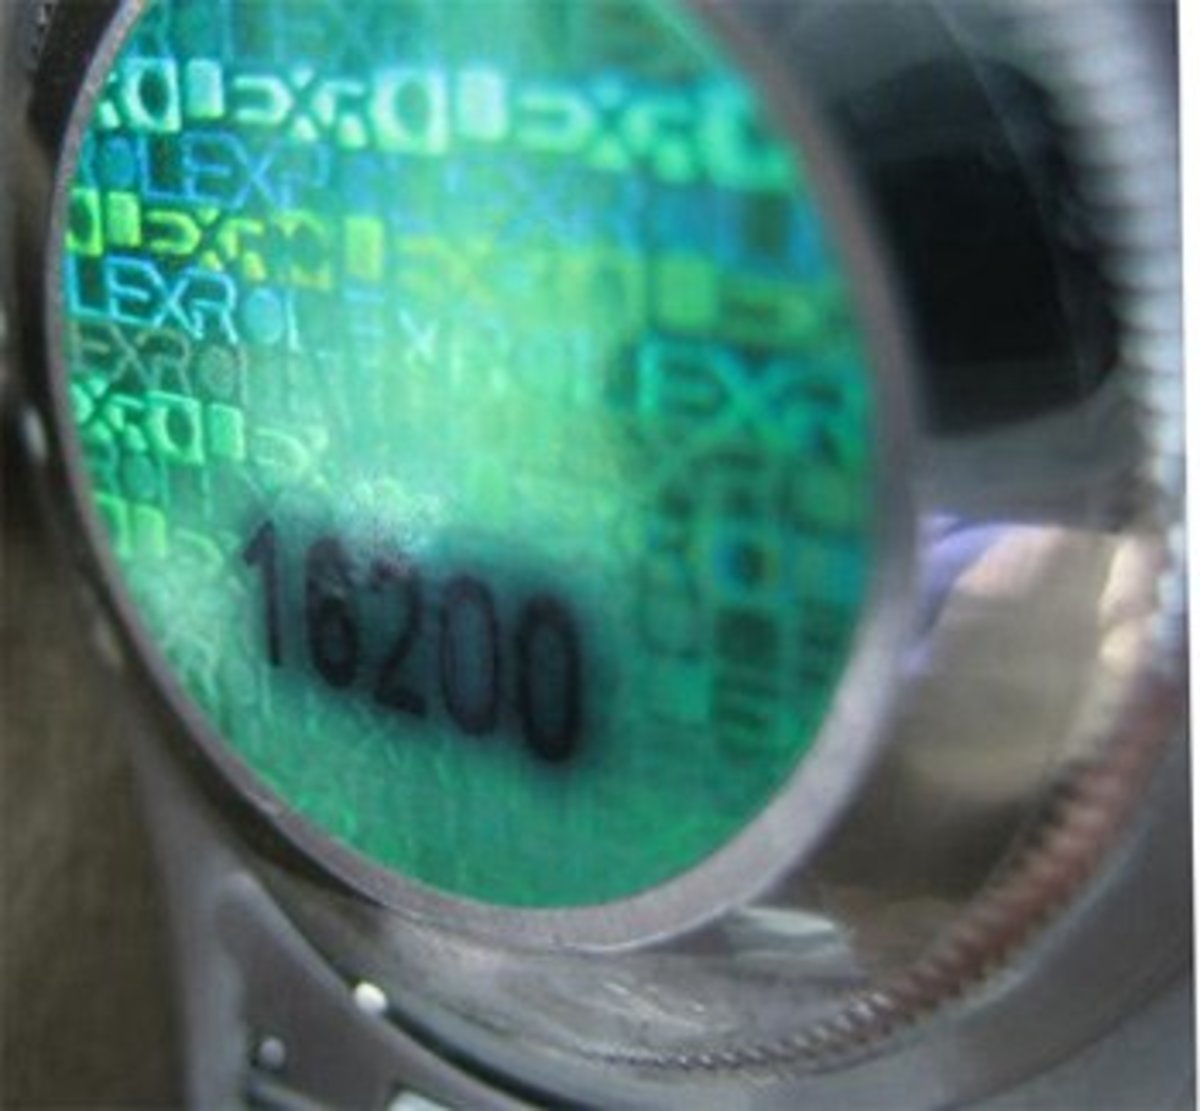 an official Rolex hologram on the back of a Datejust